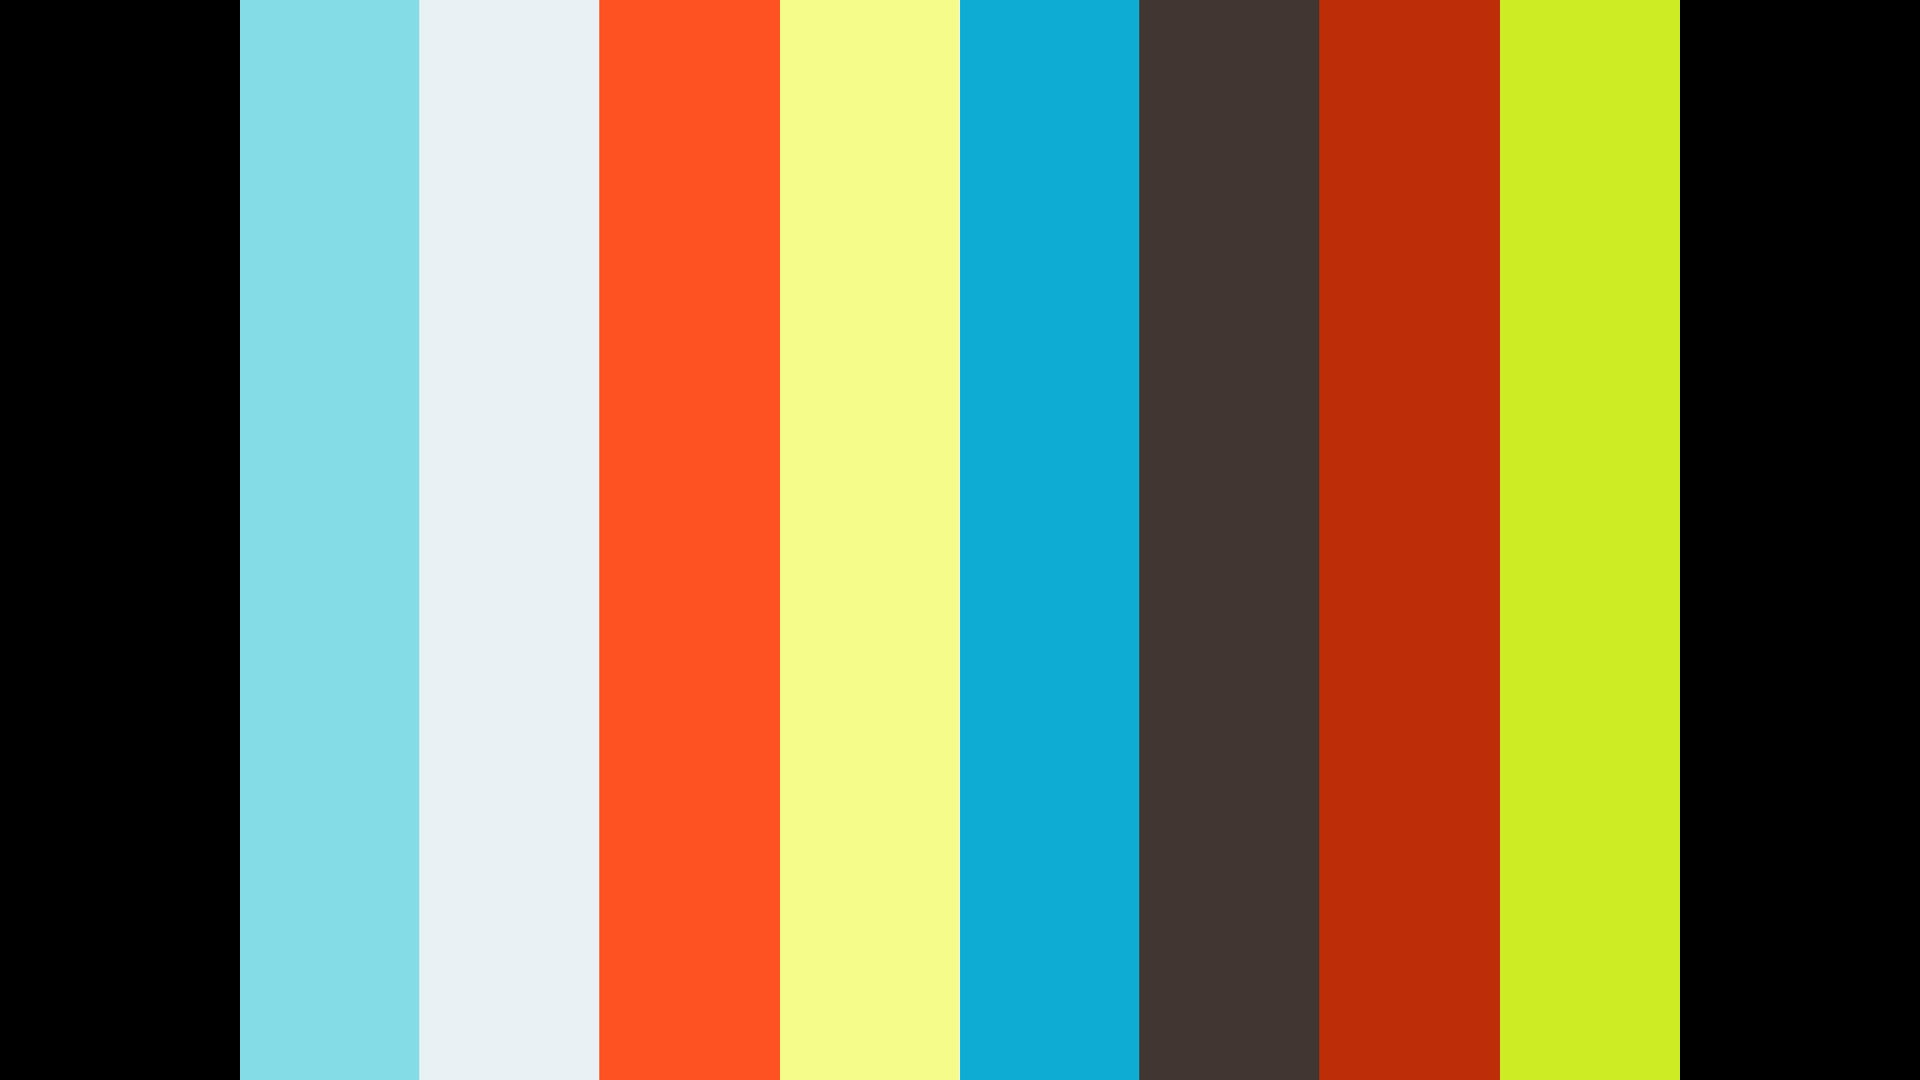 Boxing Bet, a video by Giovanna Ceno & Matteo Bontempi